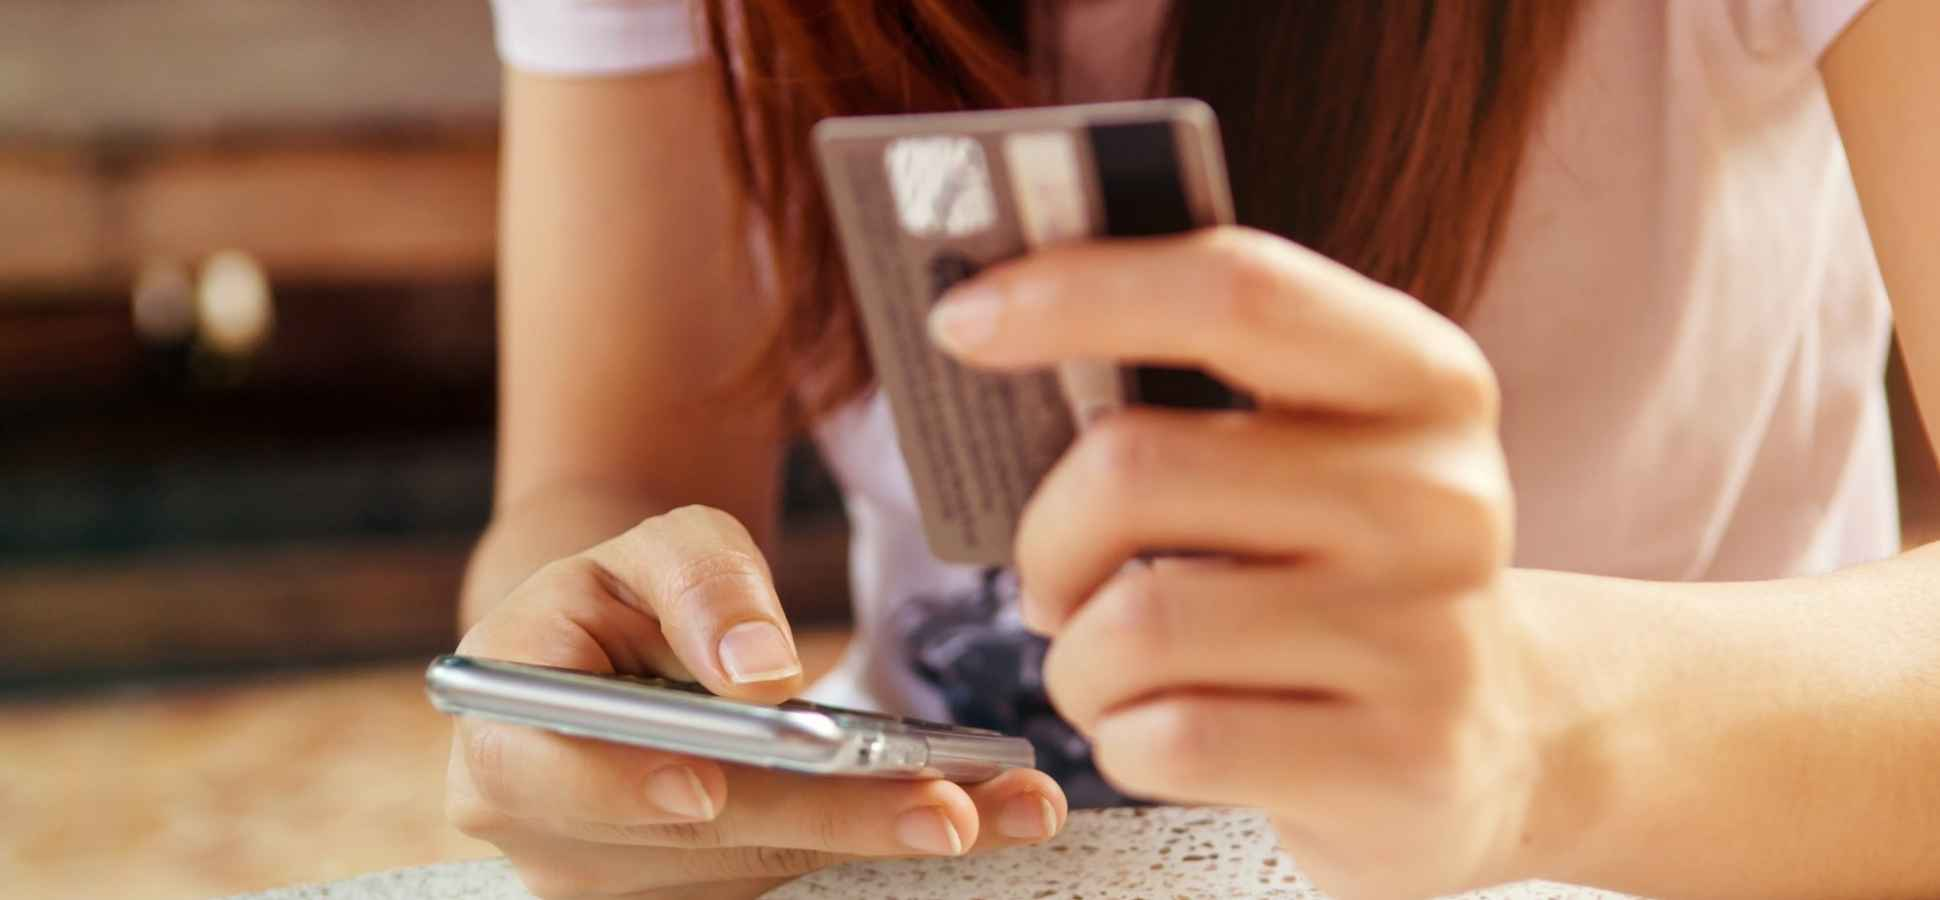 New Malware Steals Your Credit Card Info via Text